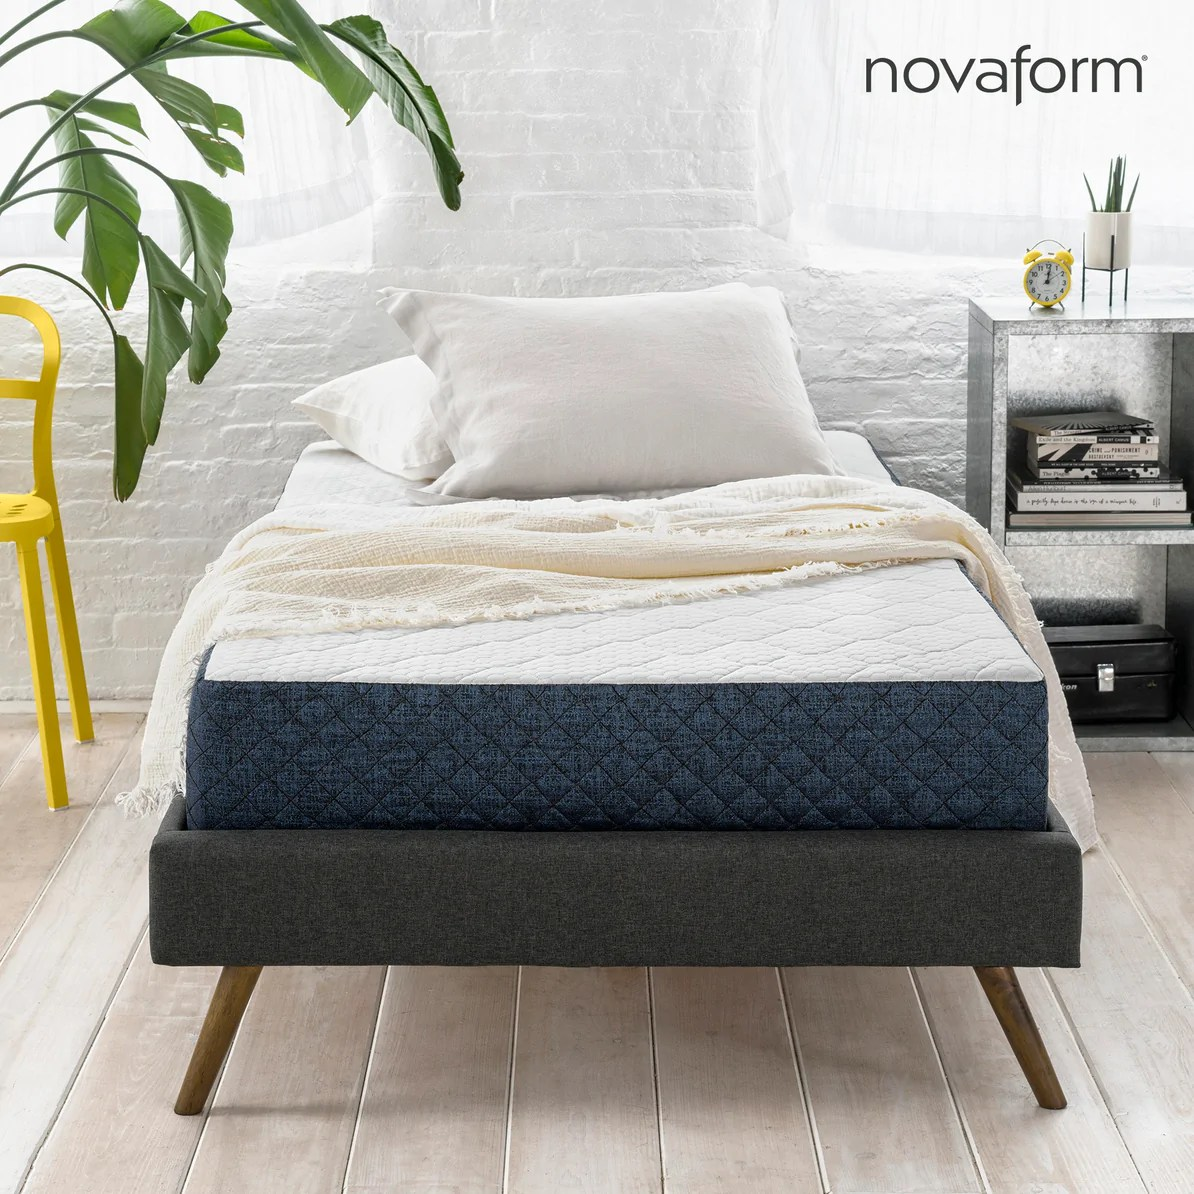 Bedroom Mattress 8 Gel Memory Foam Mattress Twin